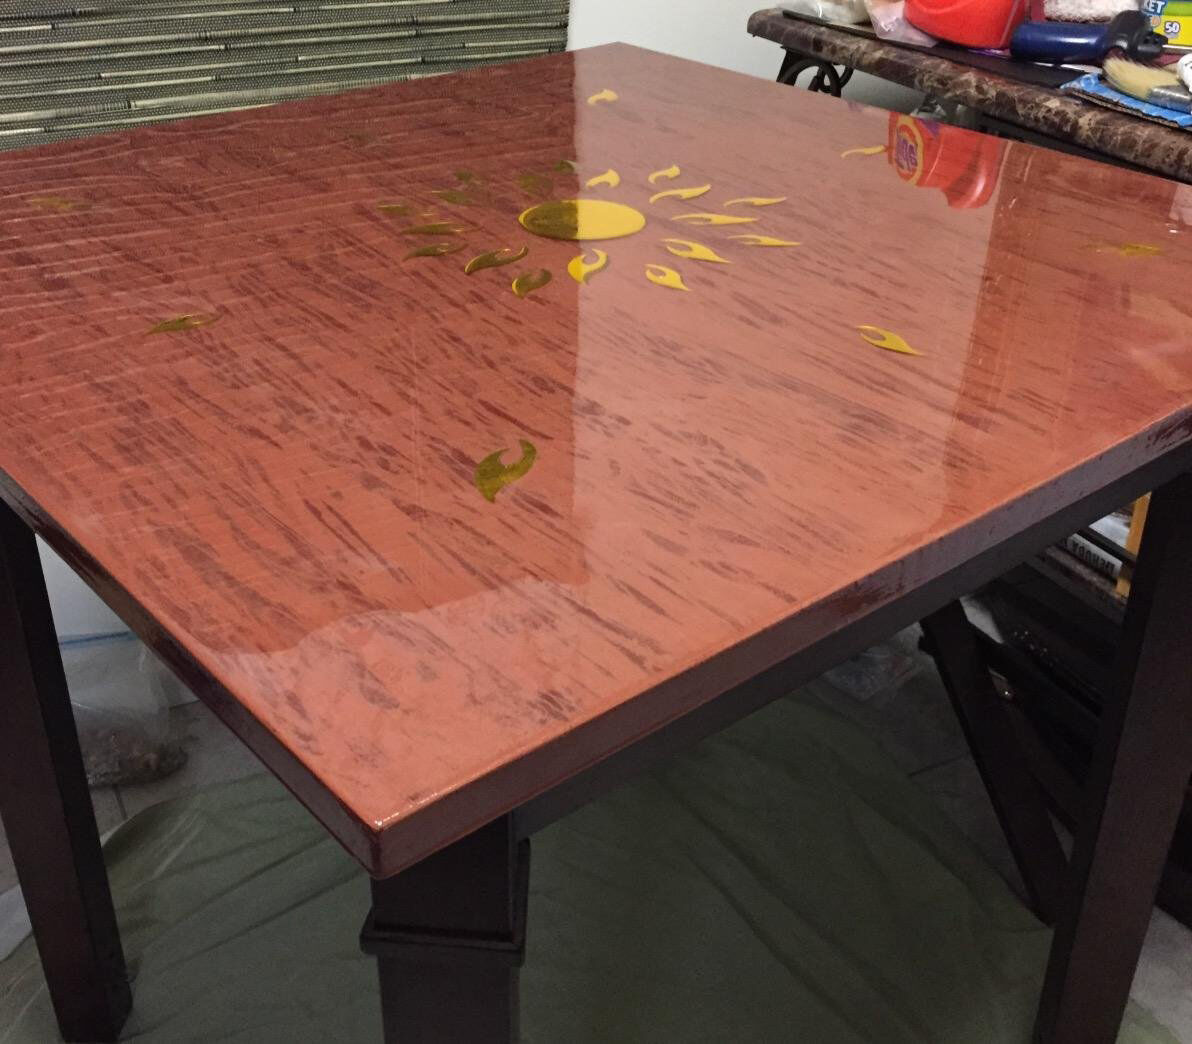 Crystal Clear Bar Table Top Epoxy Resin Coating For Wood Tabletop – 6 Gallon Kit Adhesives, Sealants & Tapes